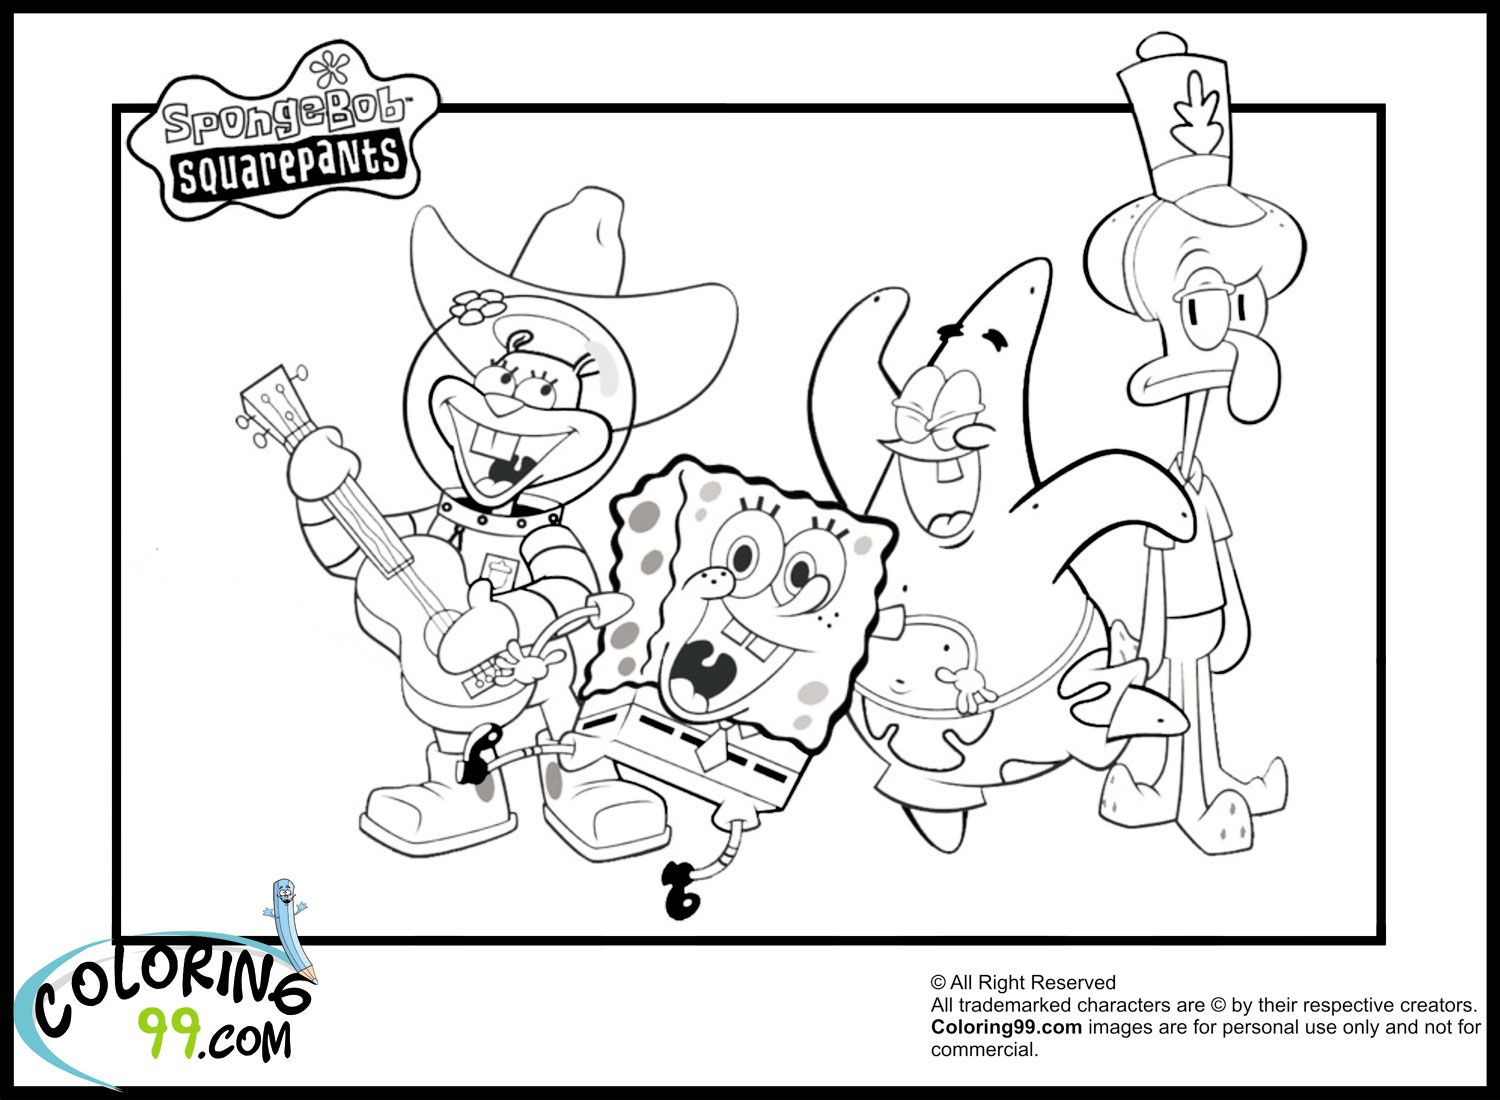 Get The Latest Free Spongebob Printable Coloring Pages Images Favorite To Print Online